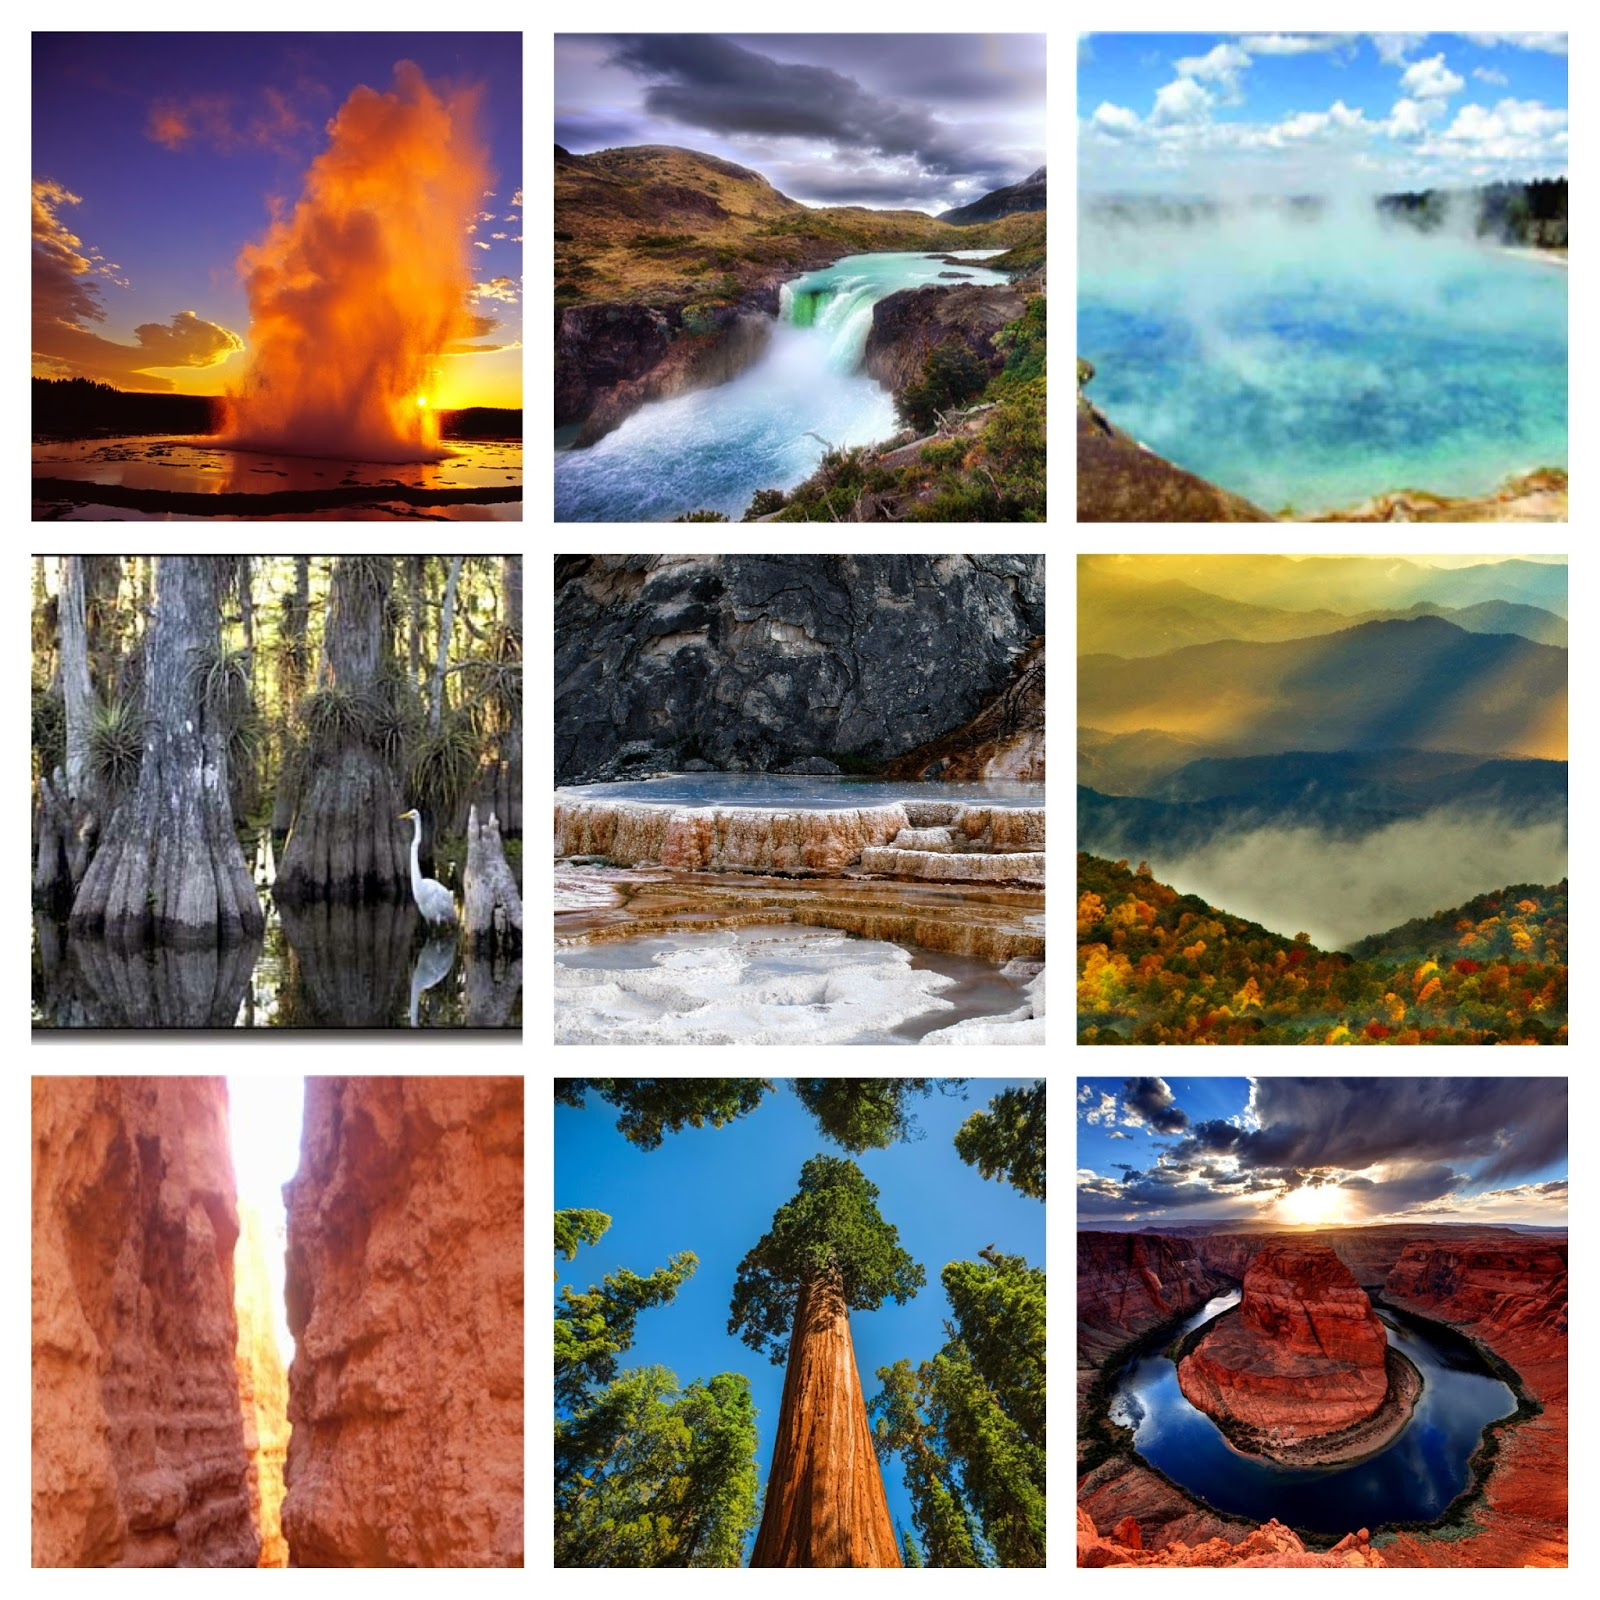 Collage Of Breathtaking Images From Many US National Parks